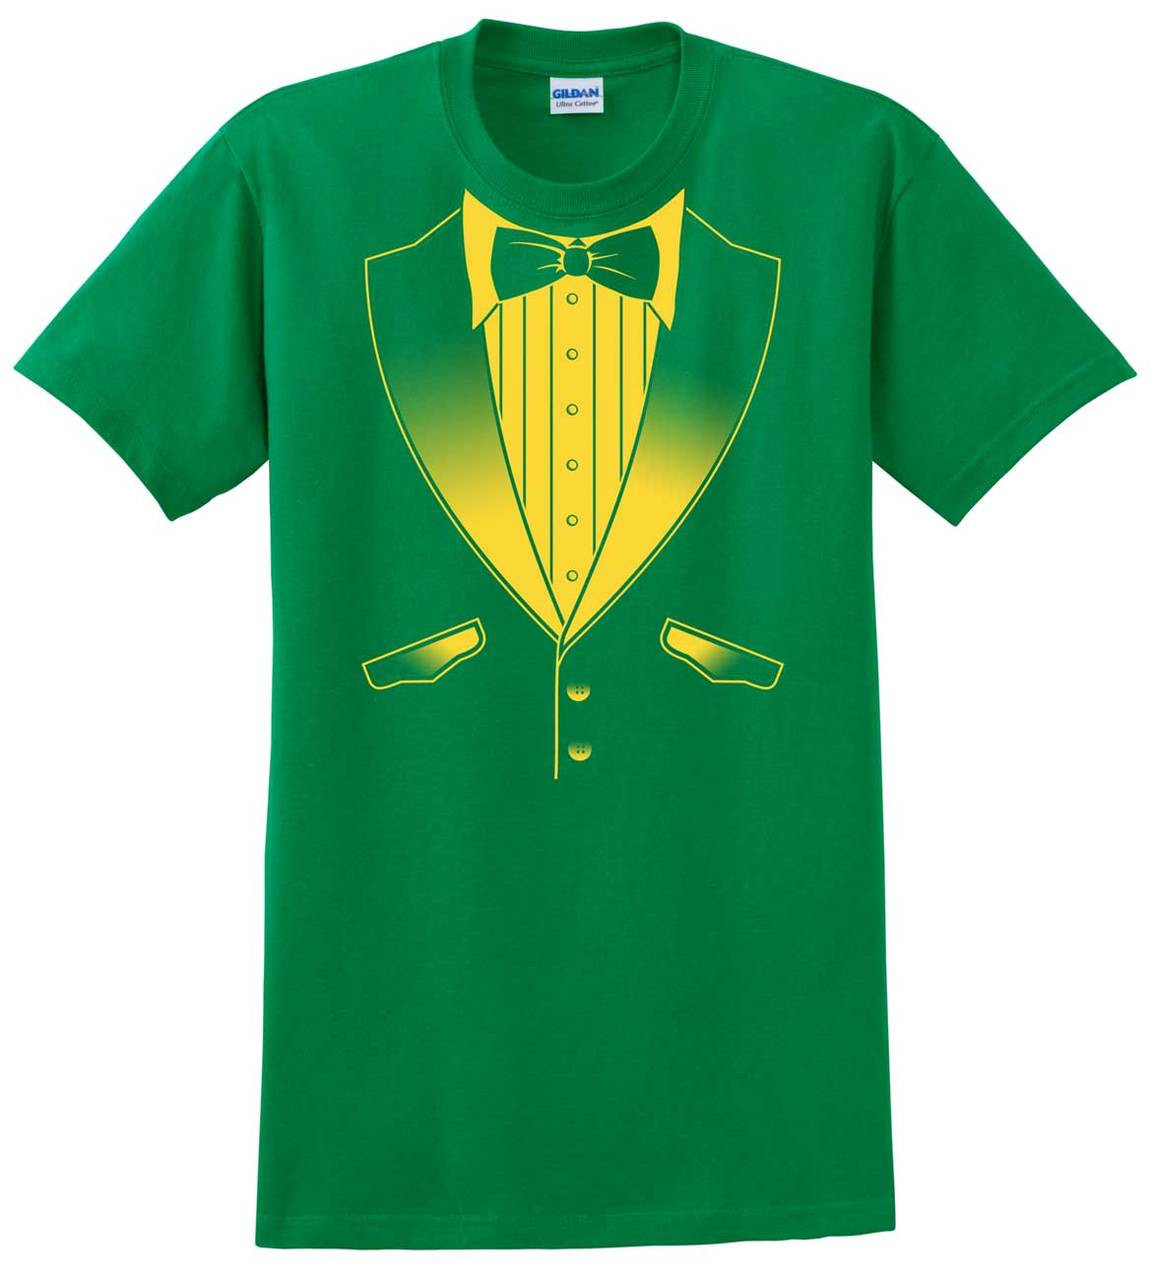 Tuxedo T Shirt In School Colors Kelly Green And Gold Tuxedo T